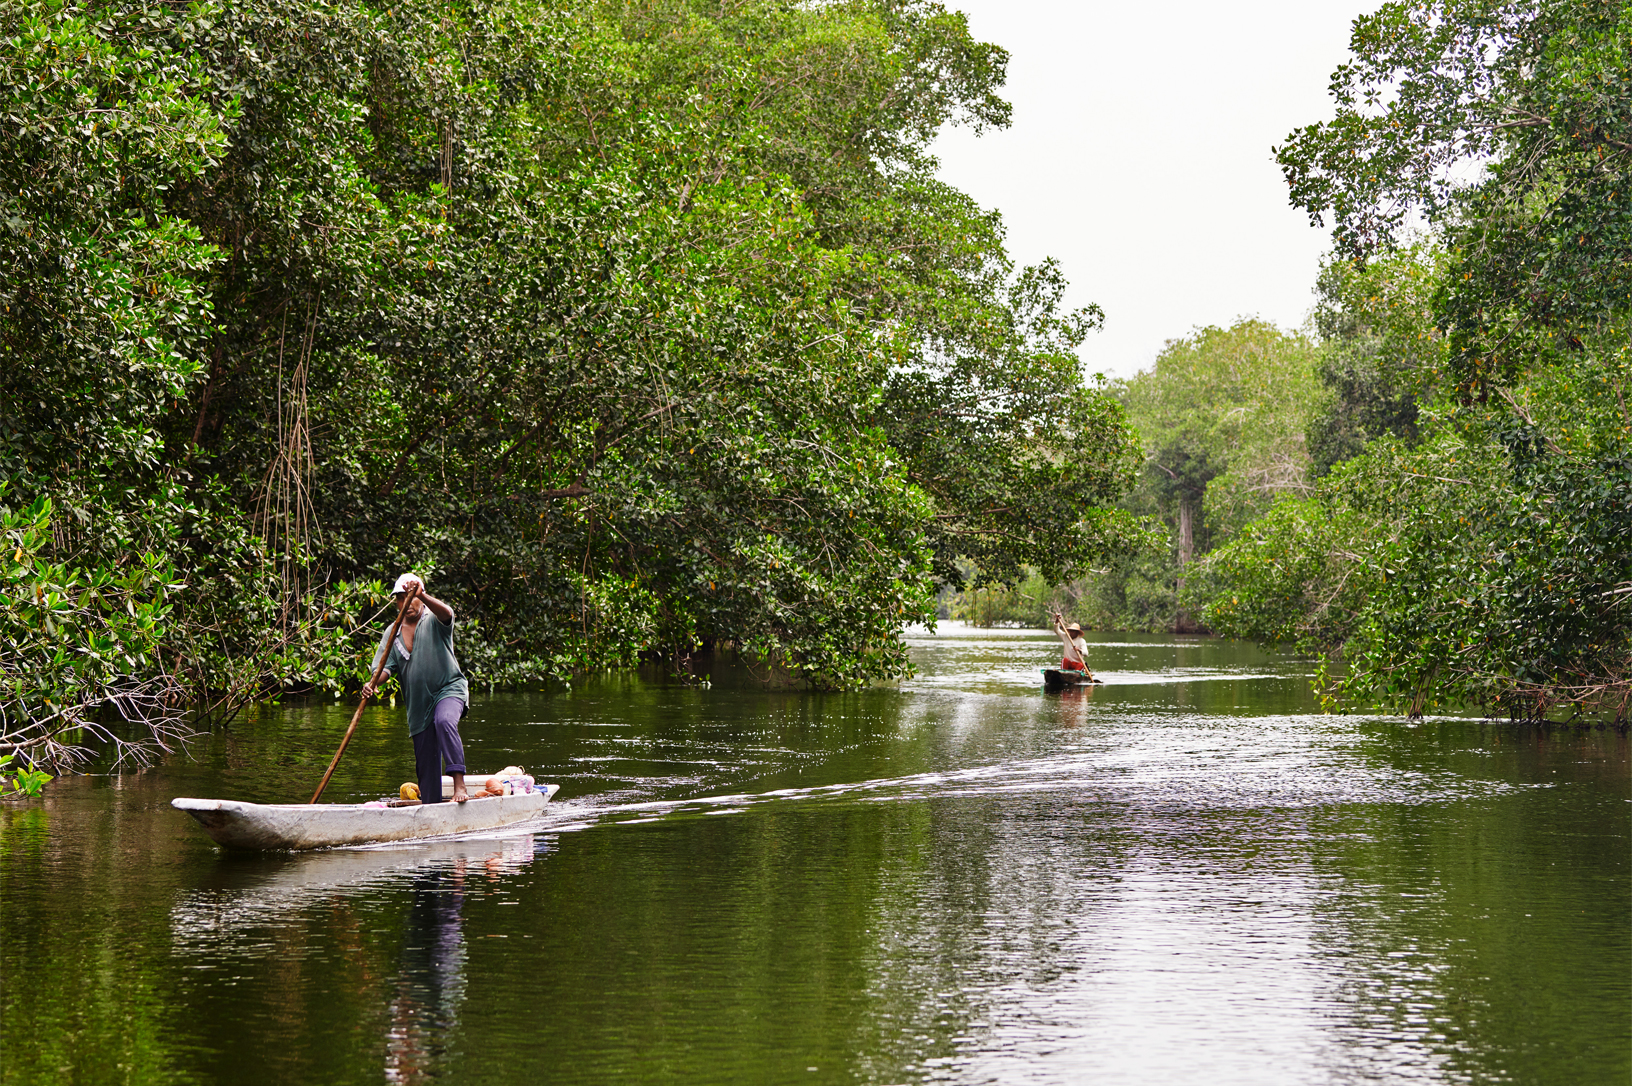 https://www.apple.com/newsroom/images/values/environment/Apple_Mangroves_Man-Canoe-River_04222019_big.jpg.large_2x.jpg